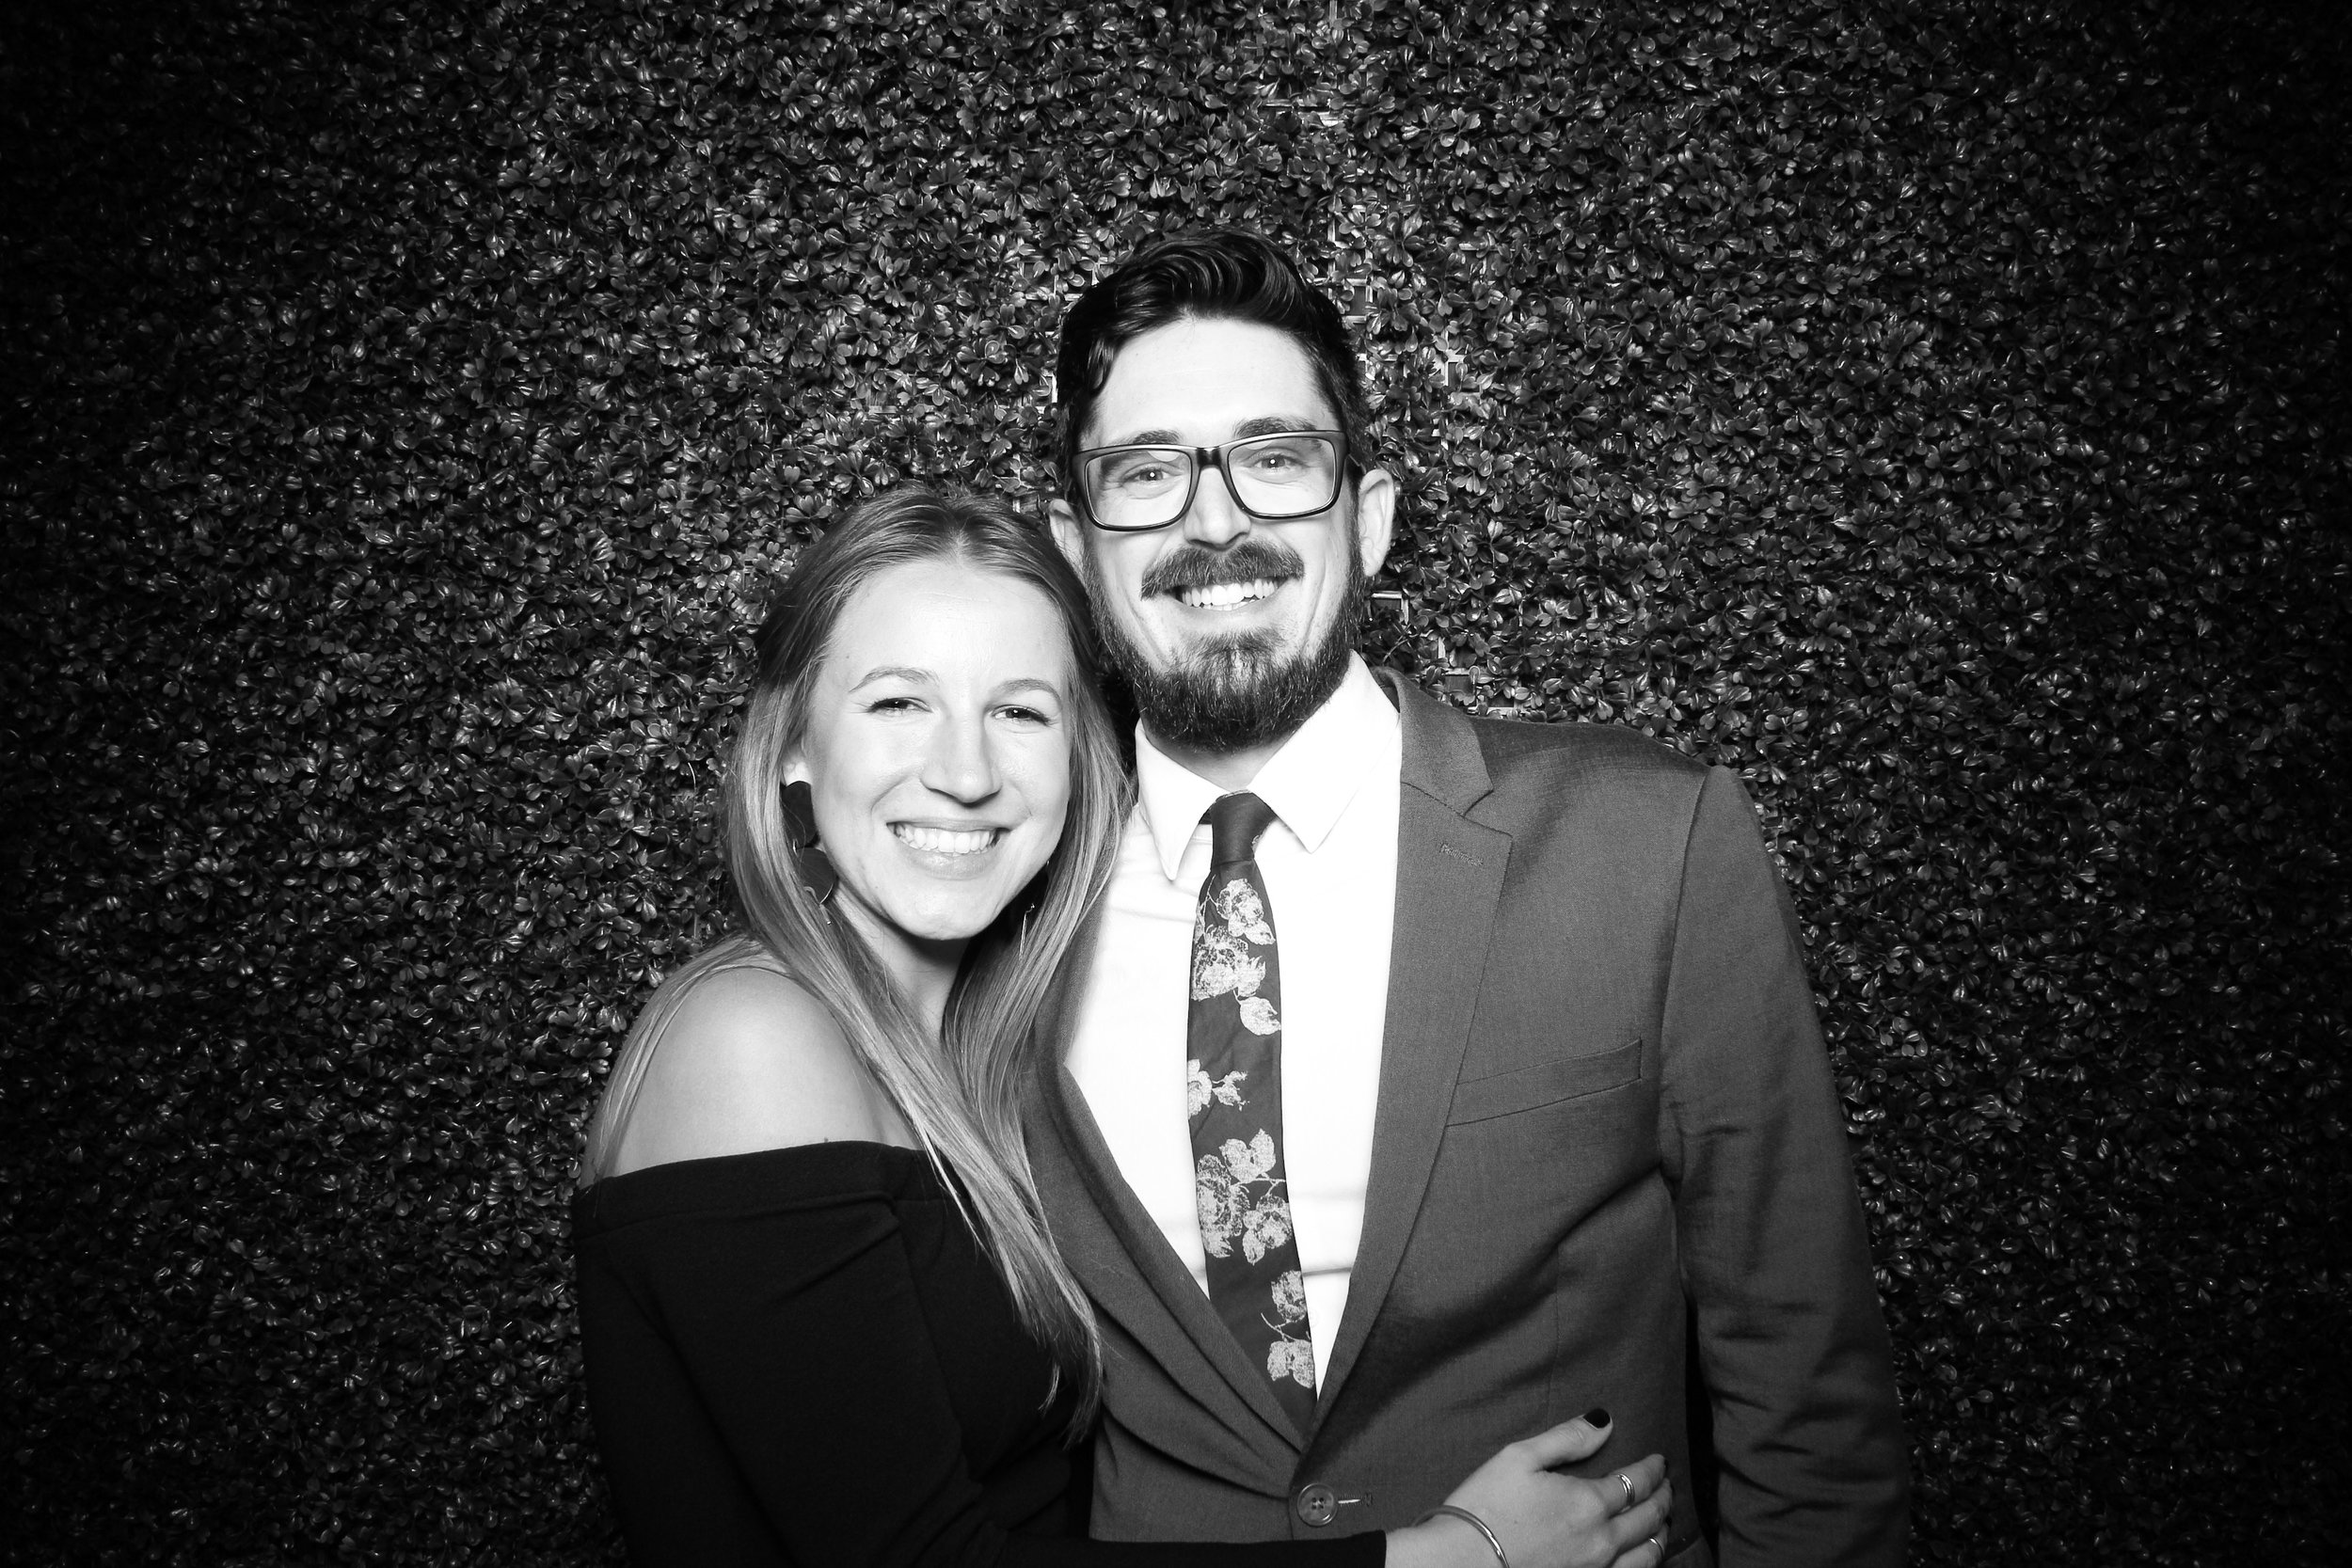 Ivy_Room_Chicago_Photo_Booth_Wedding_02.jpg